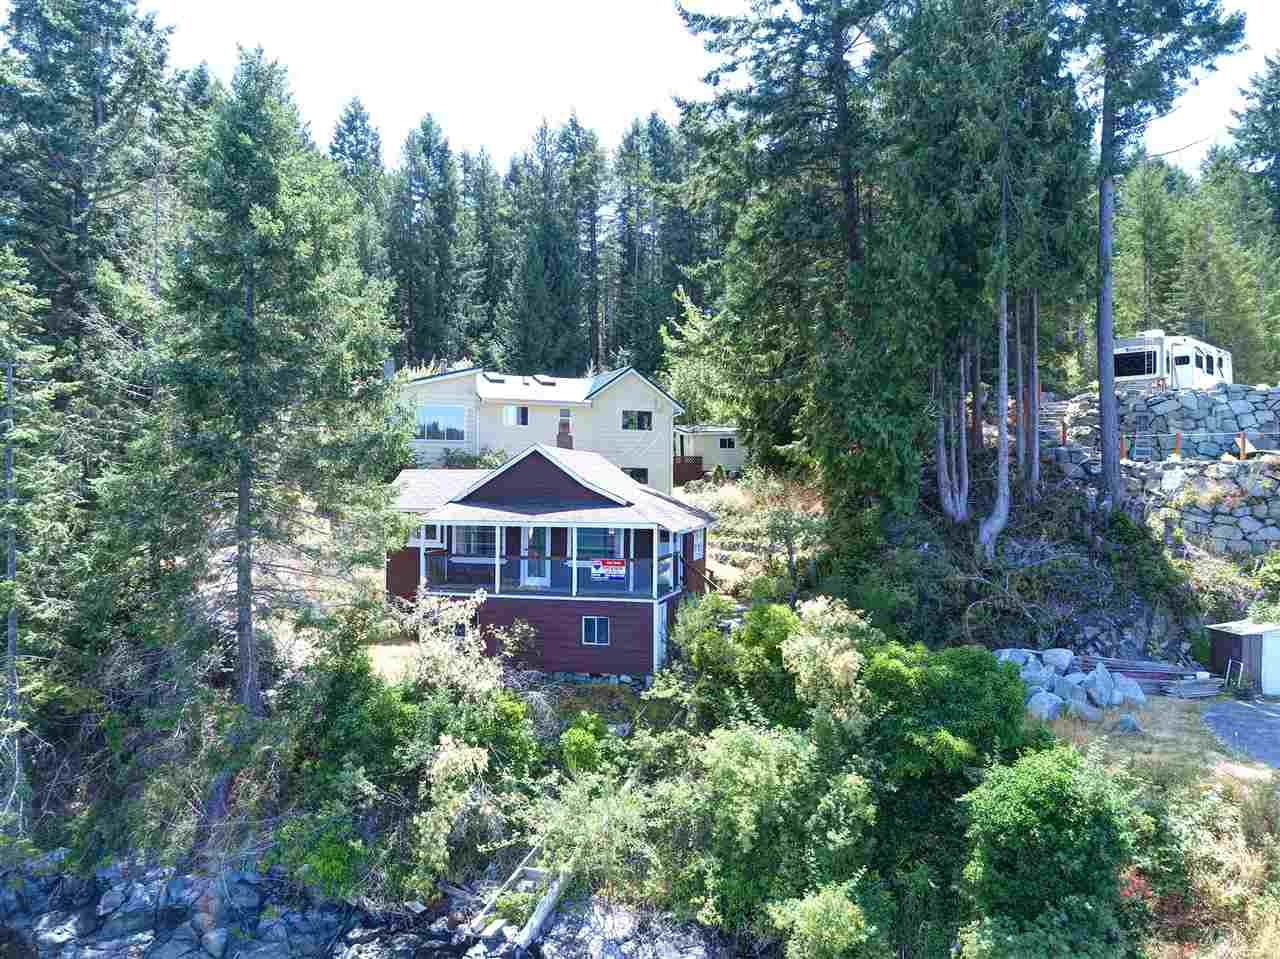 Photo 2: Photos: 13038 HASSAN Road in Madeira Park: Pender Harbour Egmont House for sale (Sunshine Coast)  : MLS®# R2187196